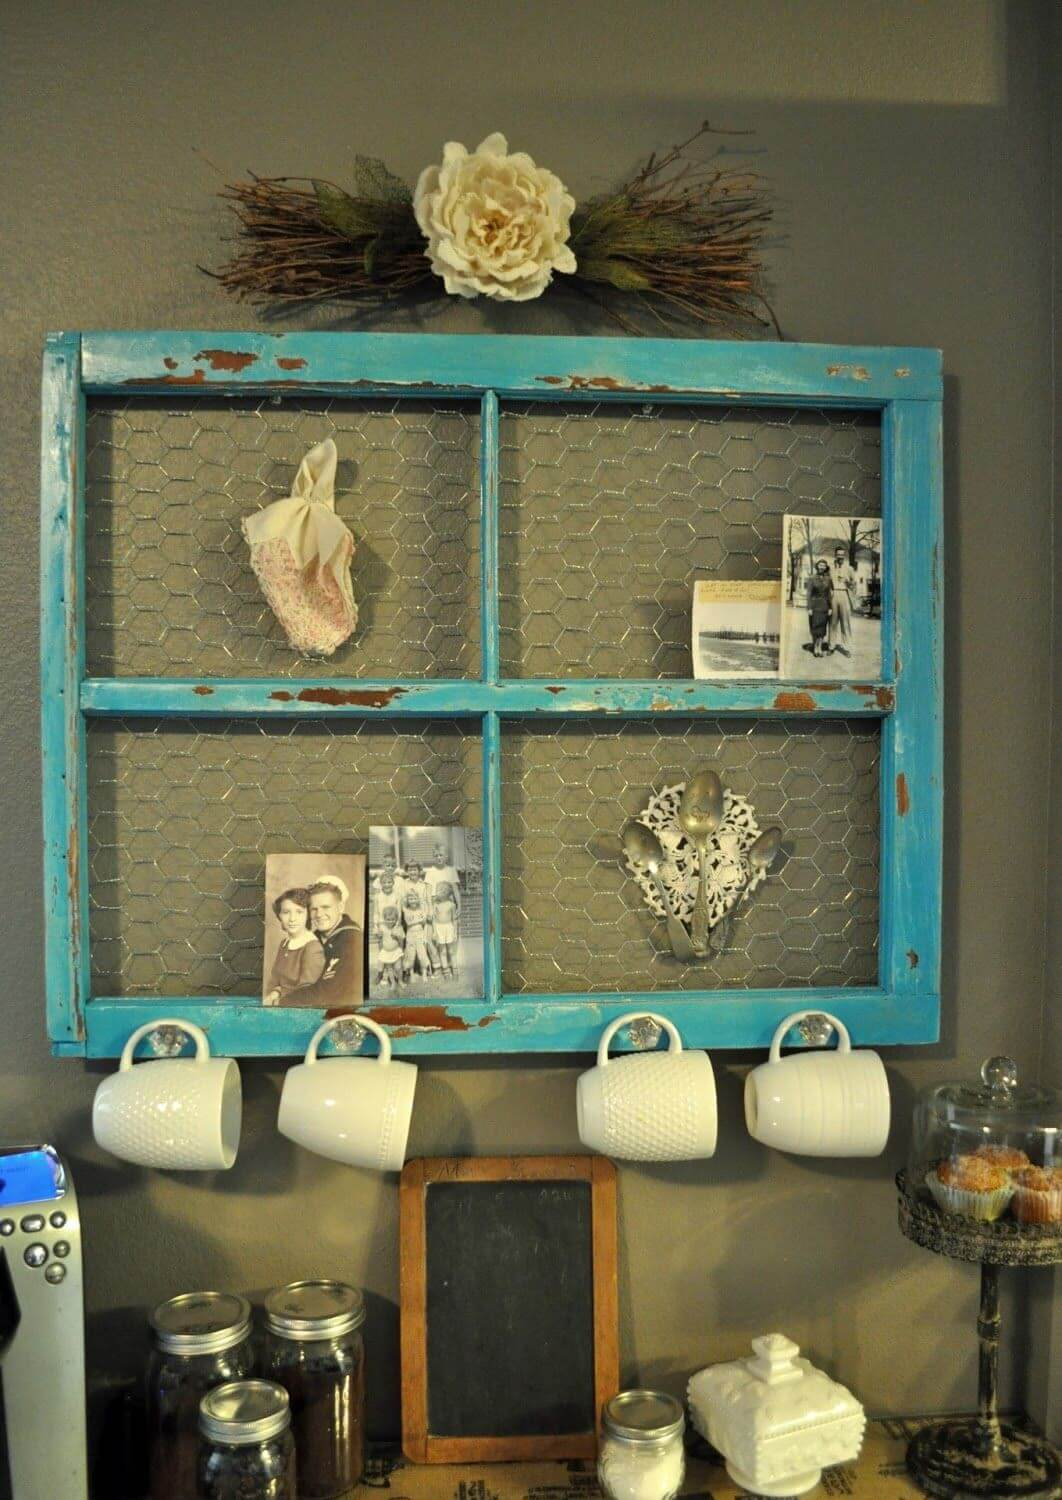 17 creative ways to repurpose and reuse old windows - Reuse Repurpose